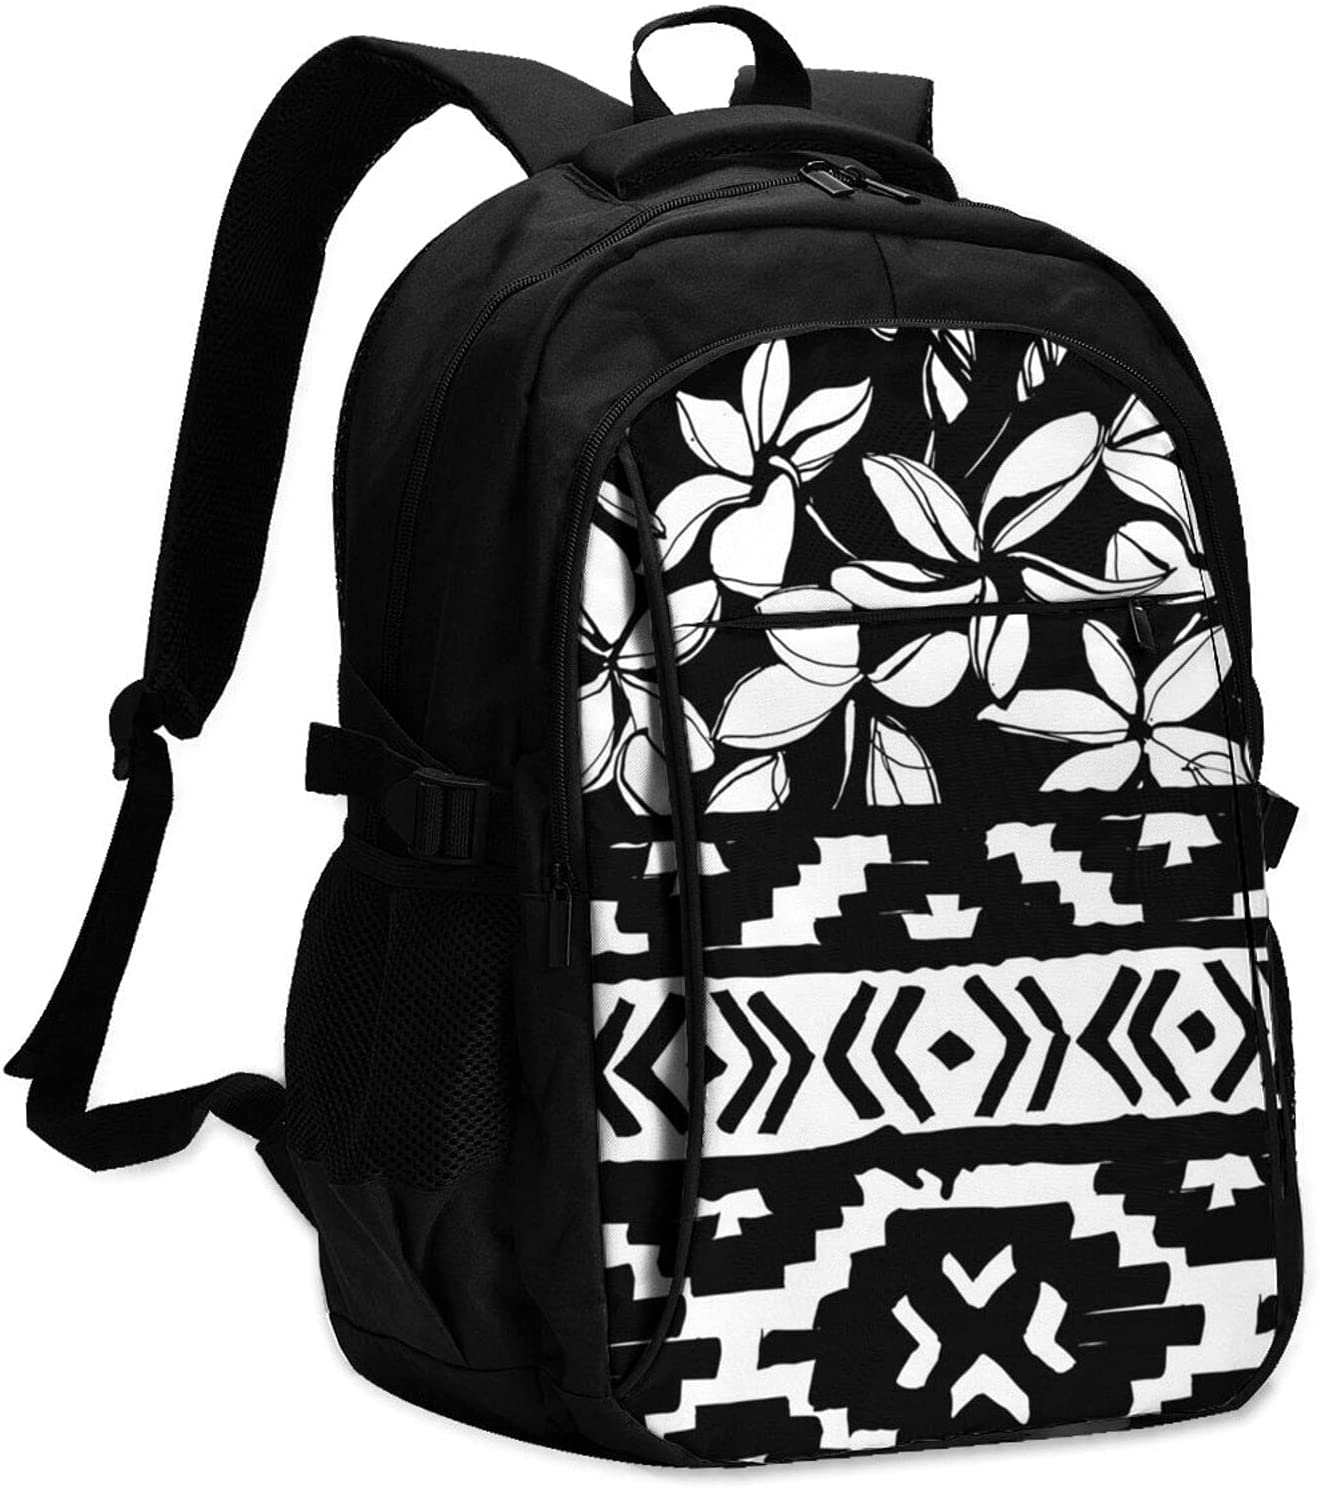 KAETZRU Laptop Backpacks with USB Aztec We OFFer at Arlington Mall cheap prices Tribal Geome Black White